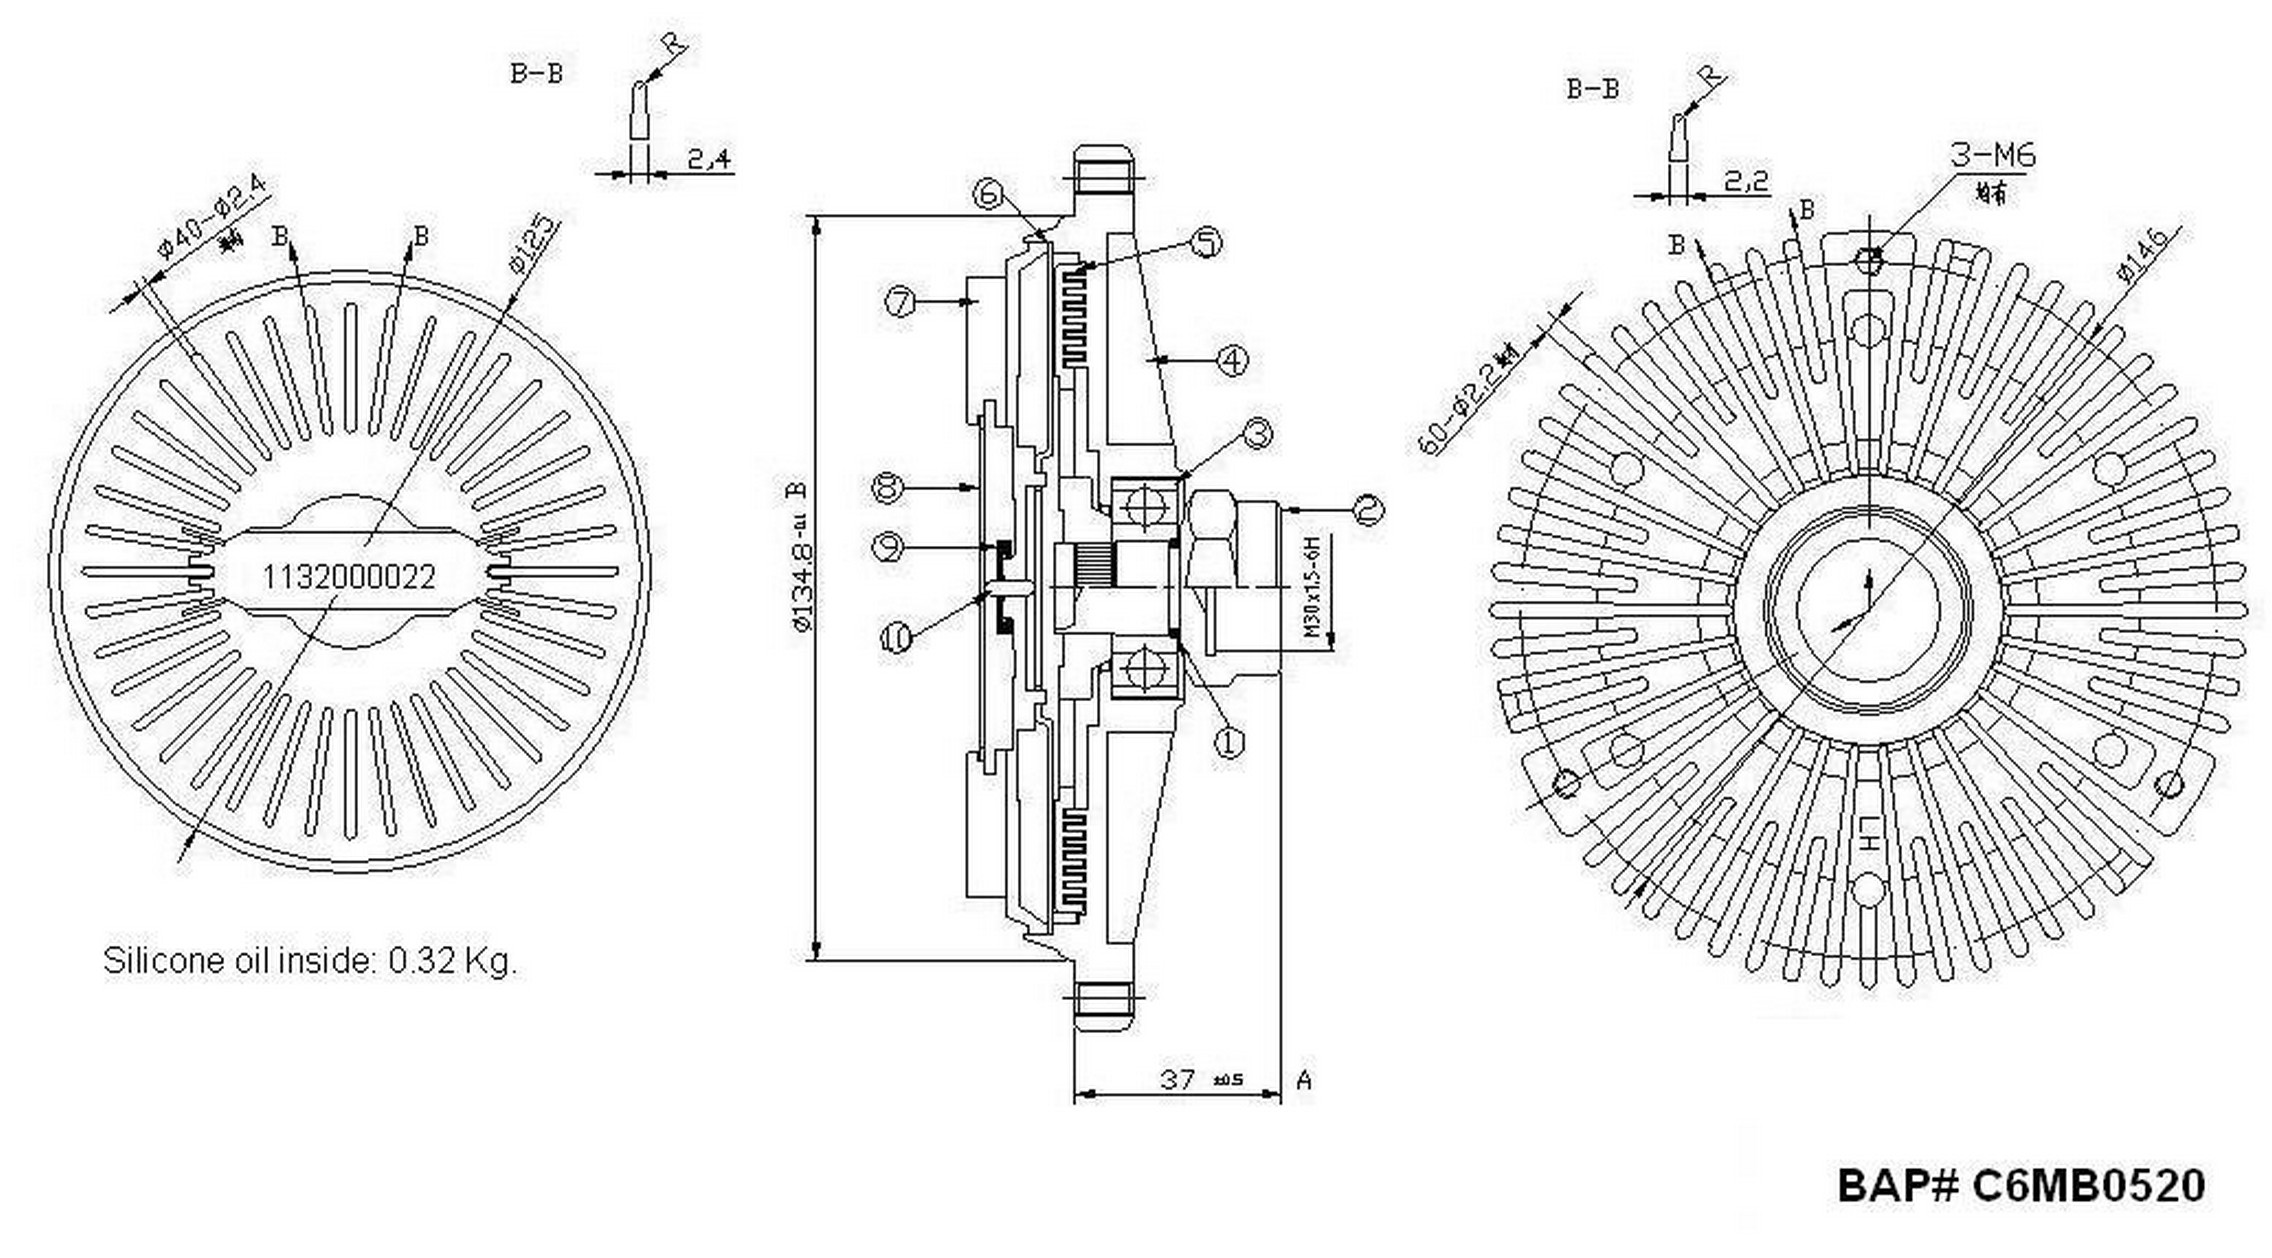 hight resolution of hella behr 376732531 engine cooling fan clutch for mercedes benz 1997 e420 amg e420 engine diagram